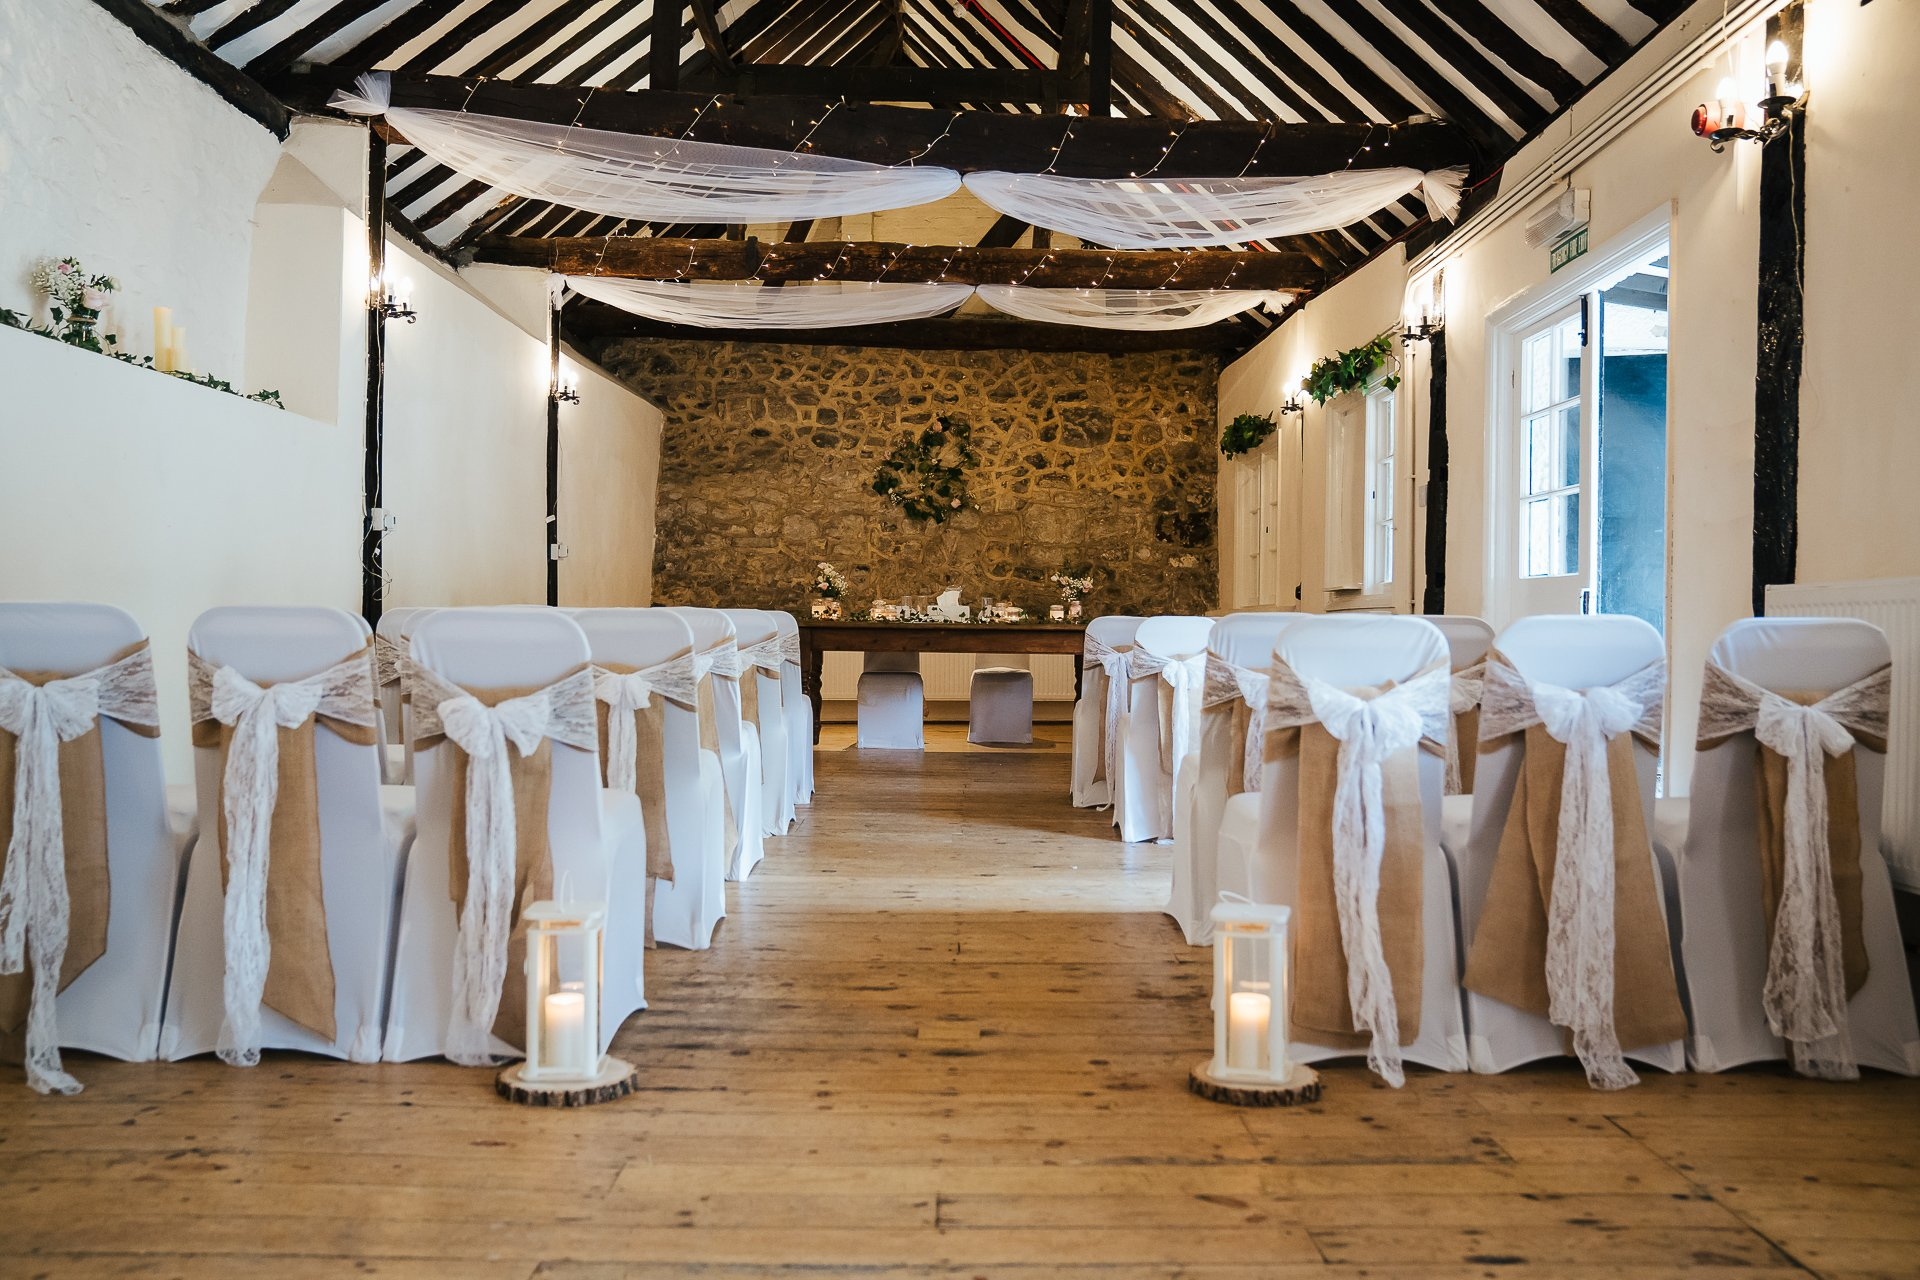 The Buttery at The Bull Hotel decorated for a rustic wedding ceremony